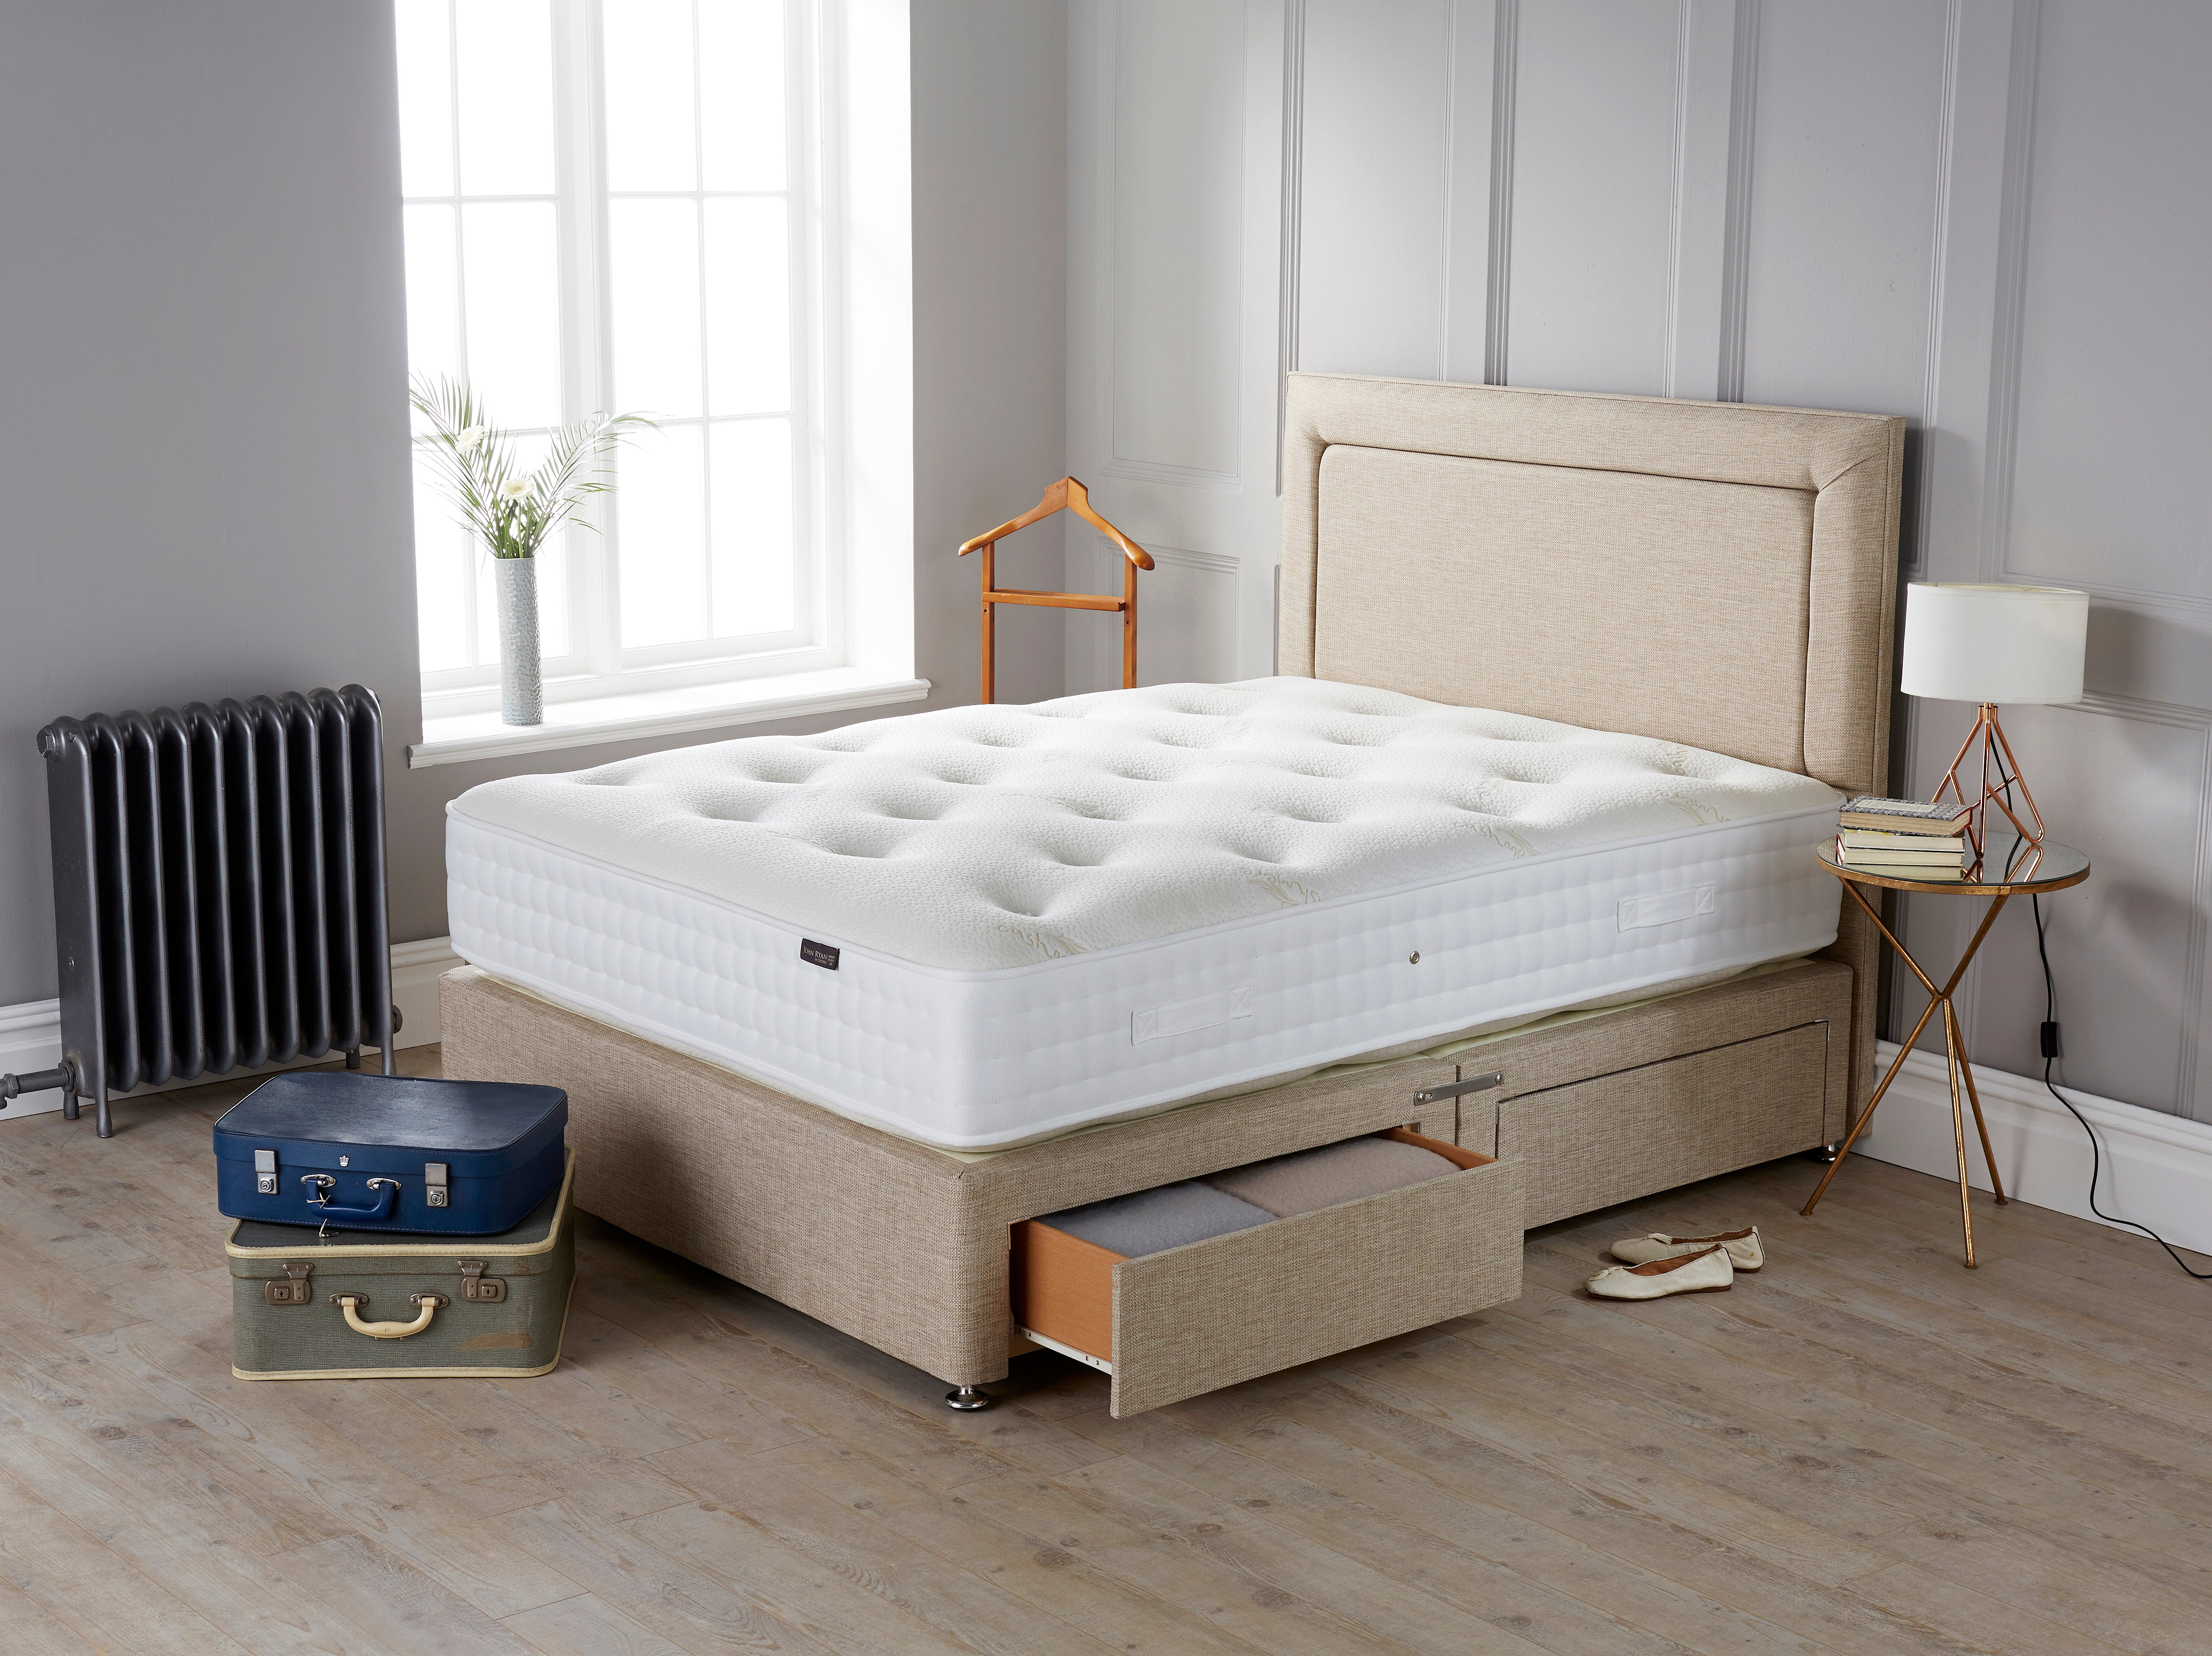 mattress for upholstered ashley bedding your memory bedroom linen images best grey all review bed charming laura with platform foam design appealign